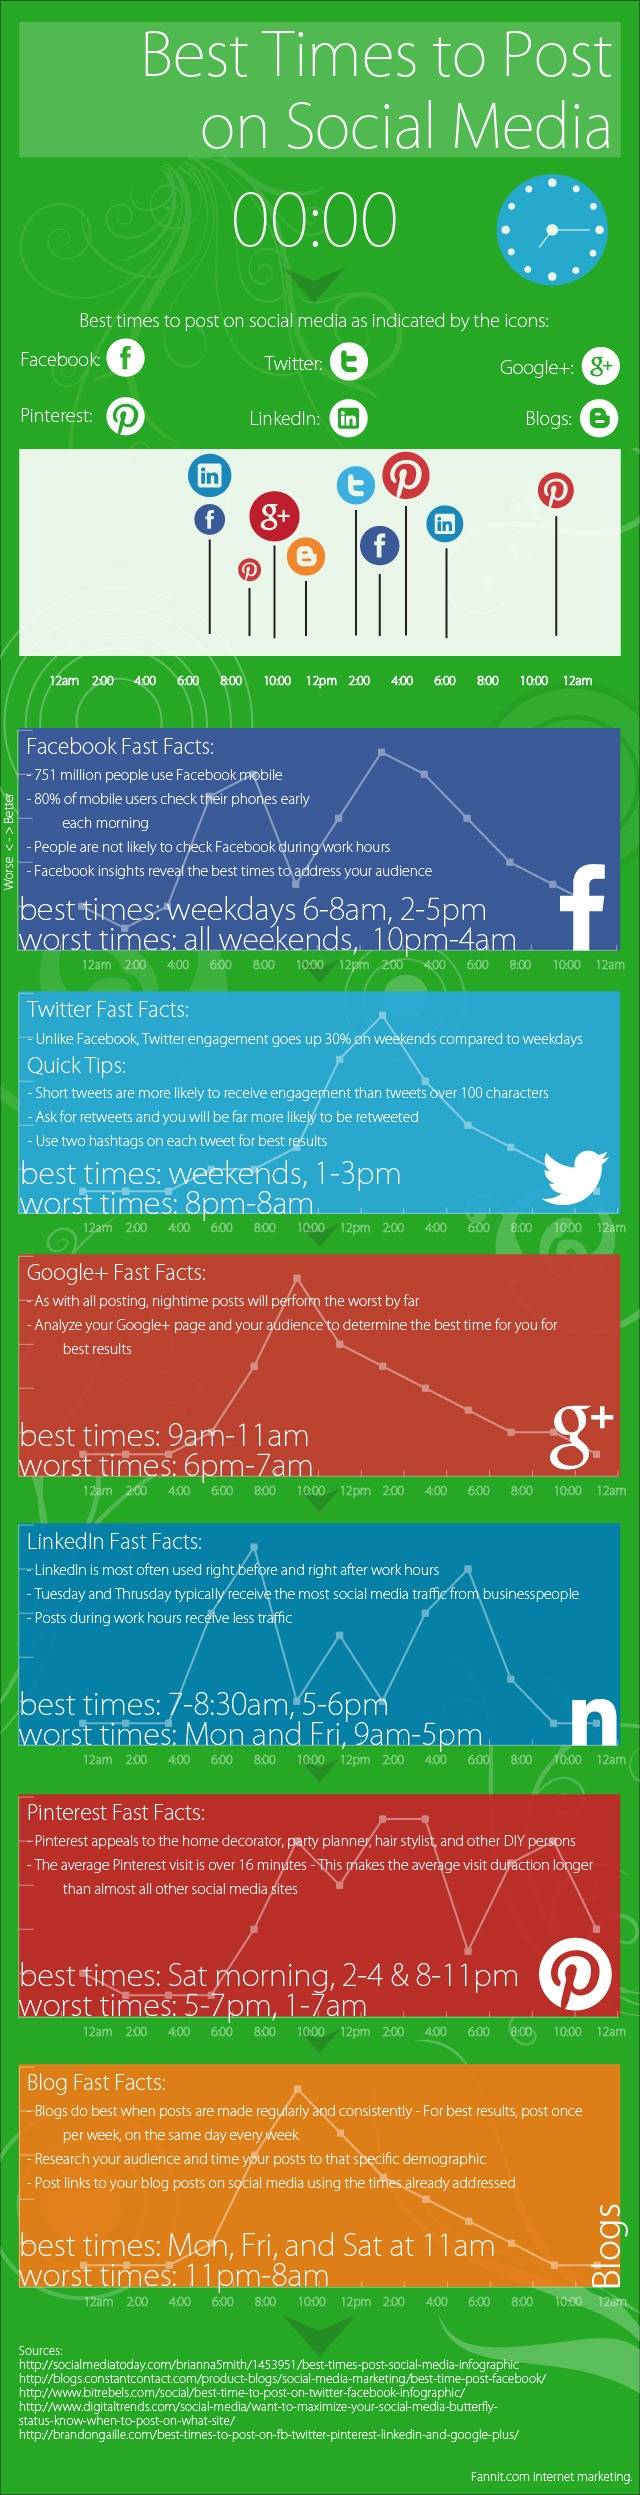 Best Times to Post Social Media